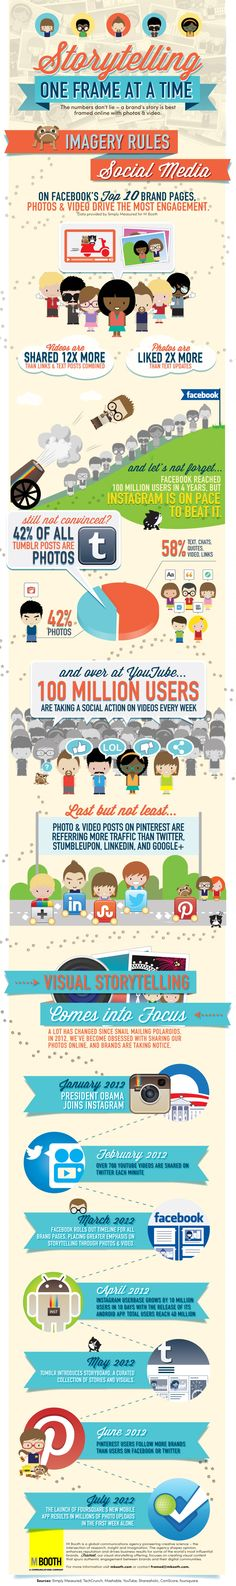 Storytelling One Frame at a Time #infographic #socialmedia